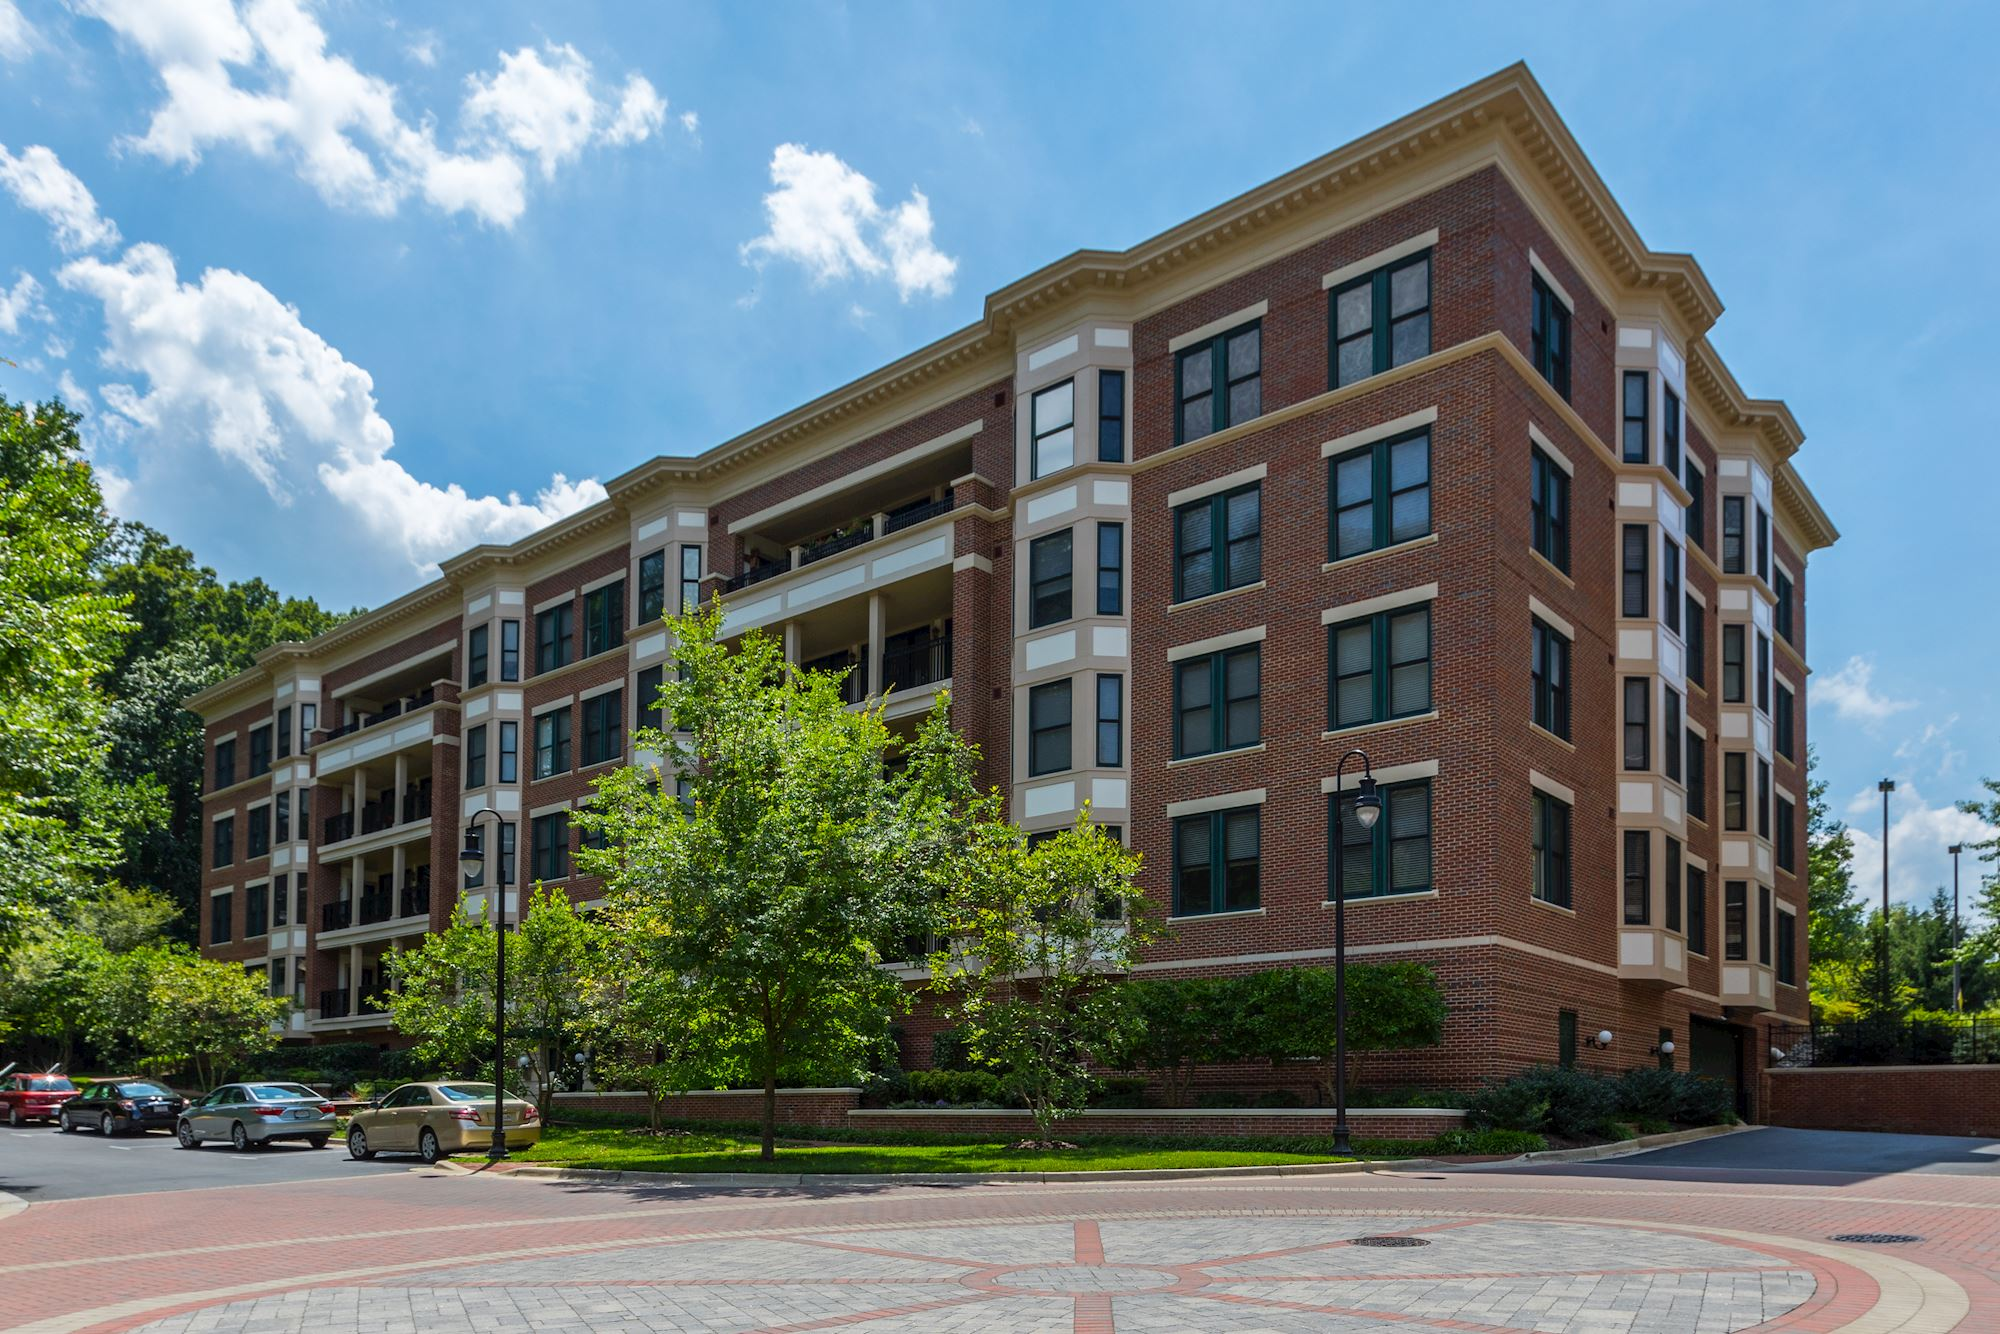 10400 strathmore park ct #1-202, north bethesda, md 20852